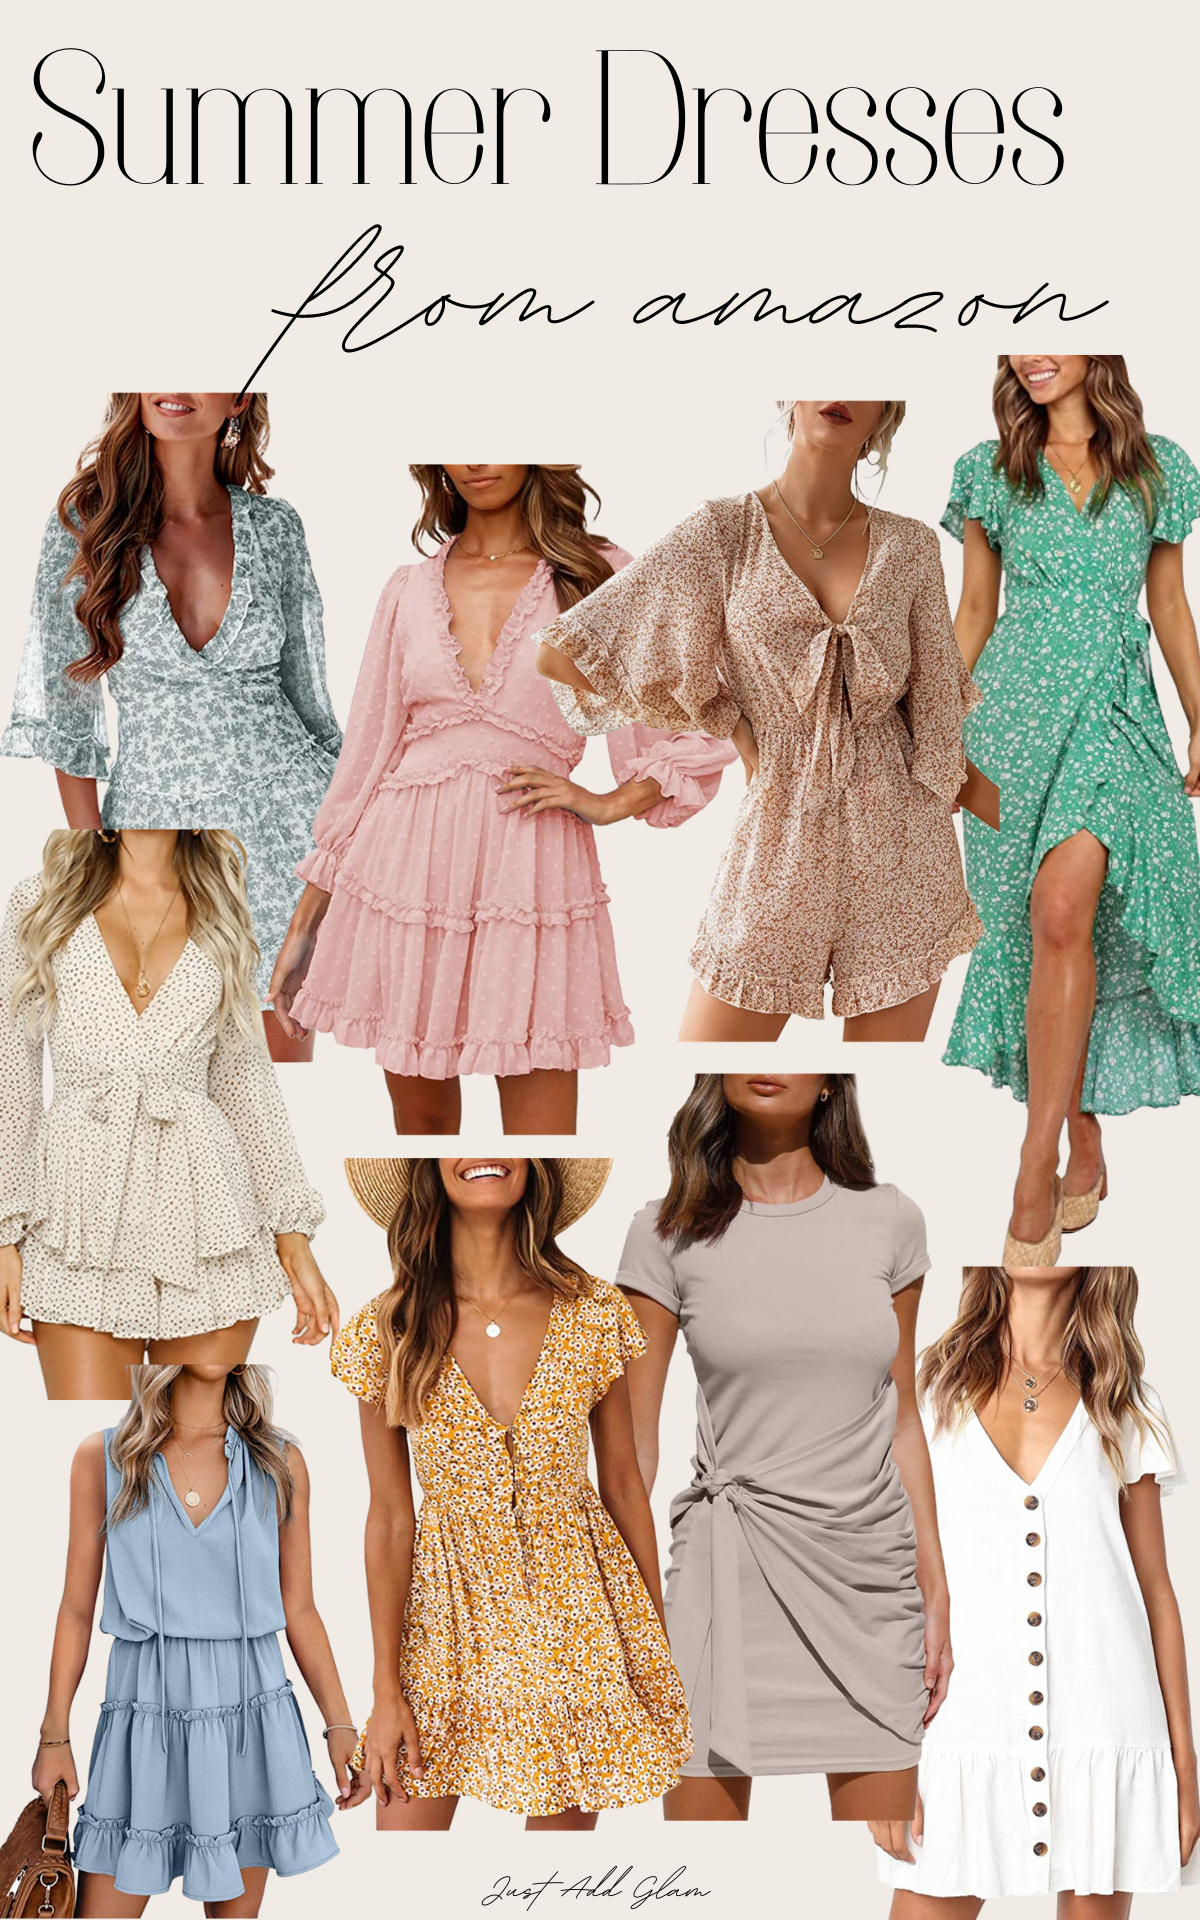 Summer dresses from Amazon